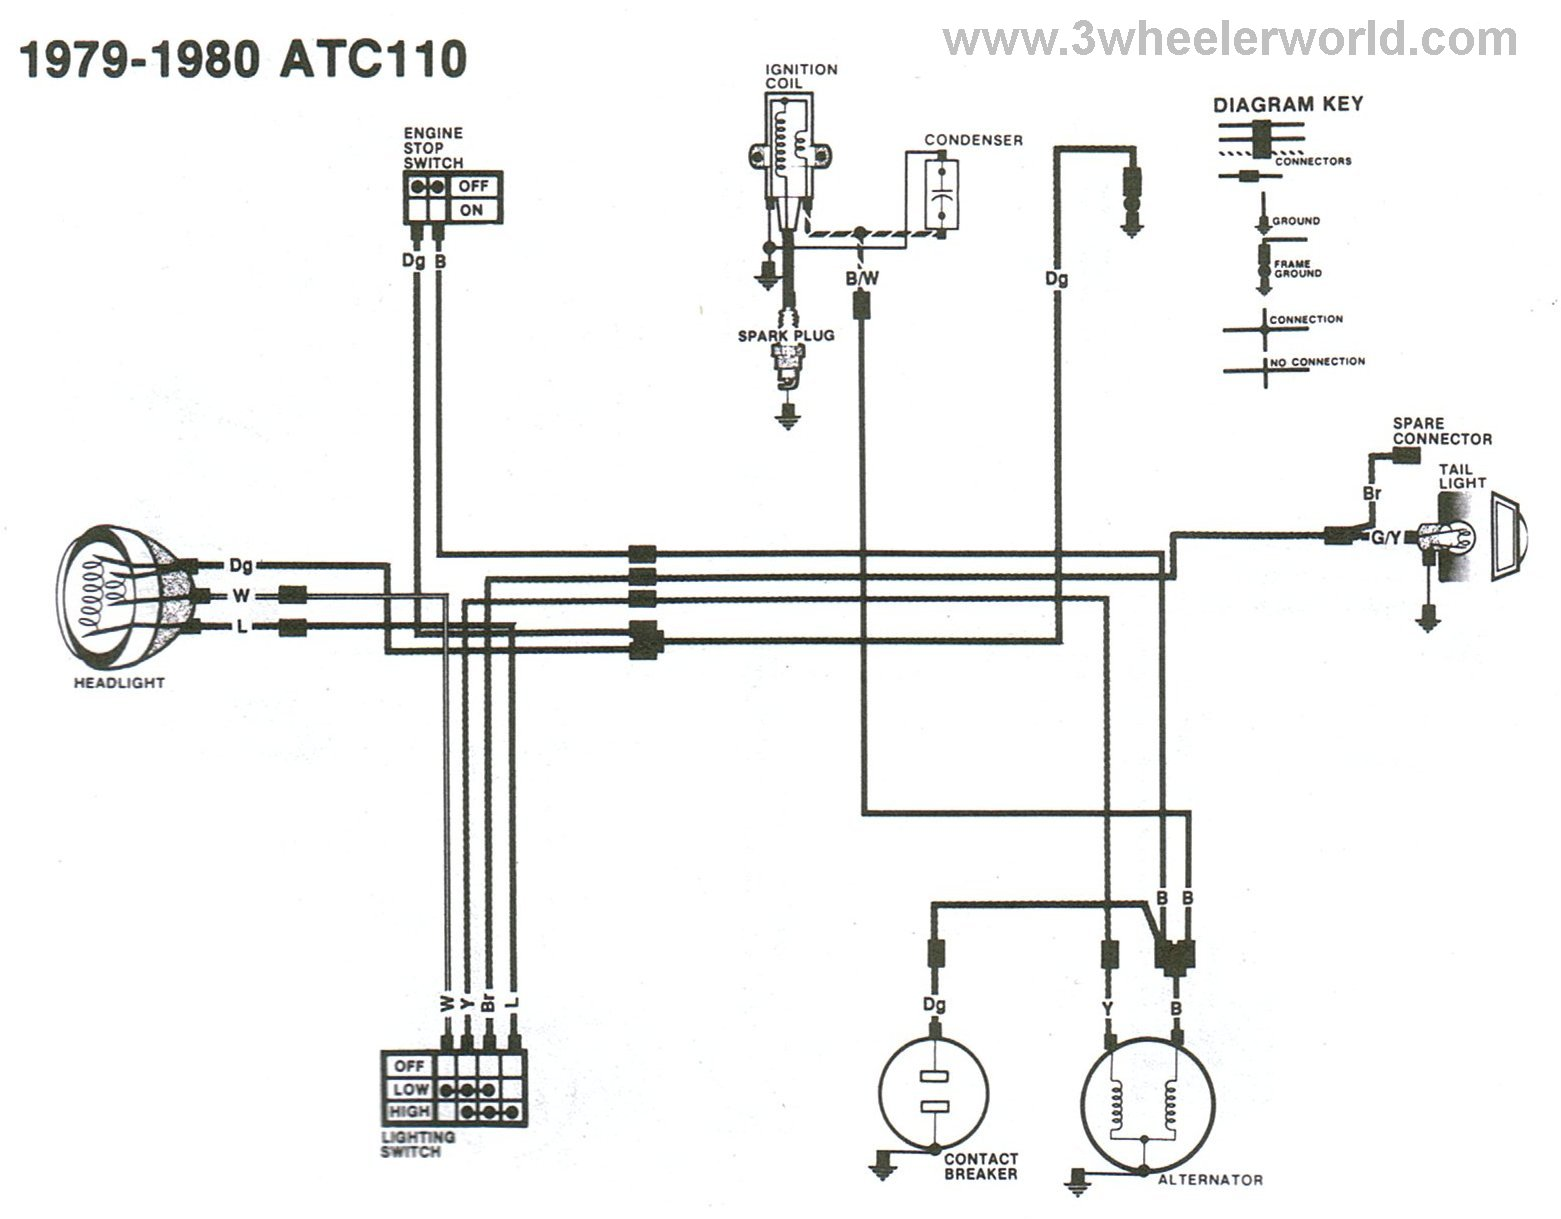 Sonata Wiring Diagram Together With Honda Motorcycle Wiring Diagrams